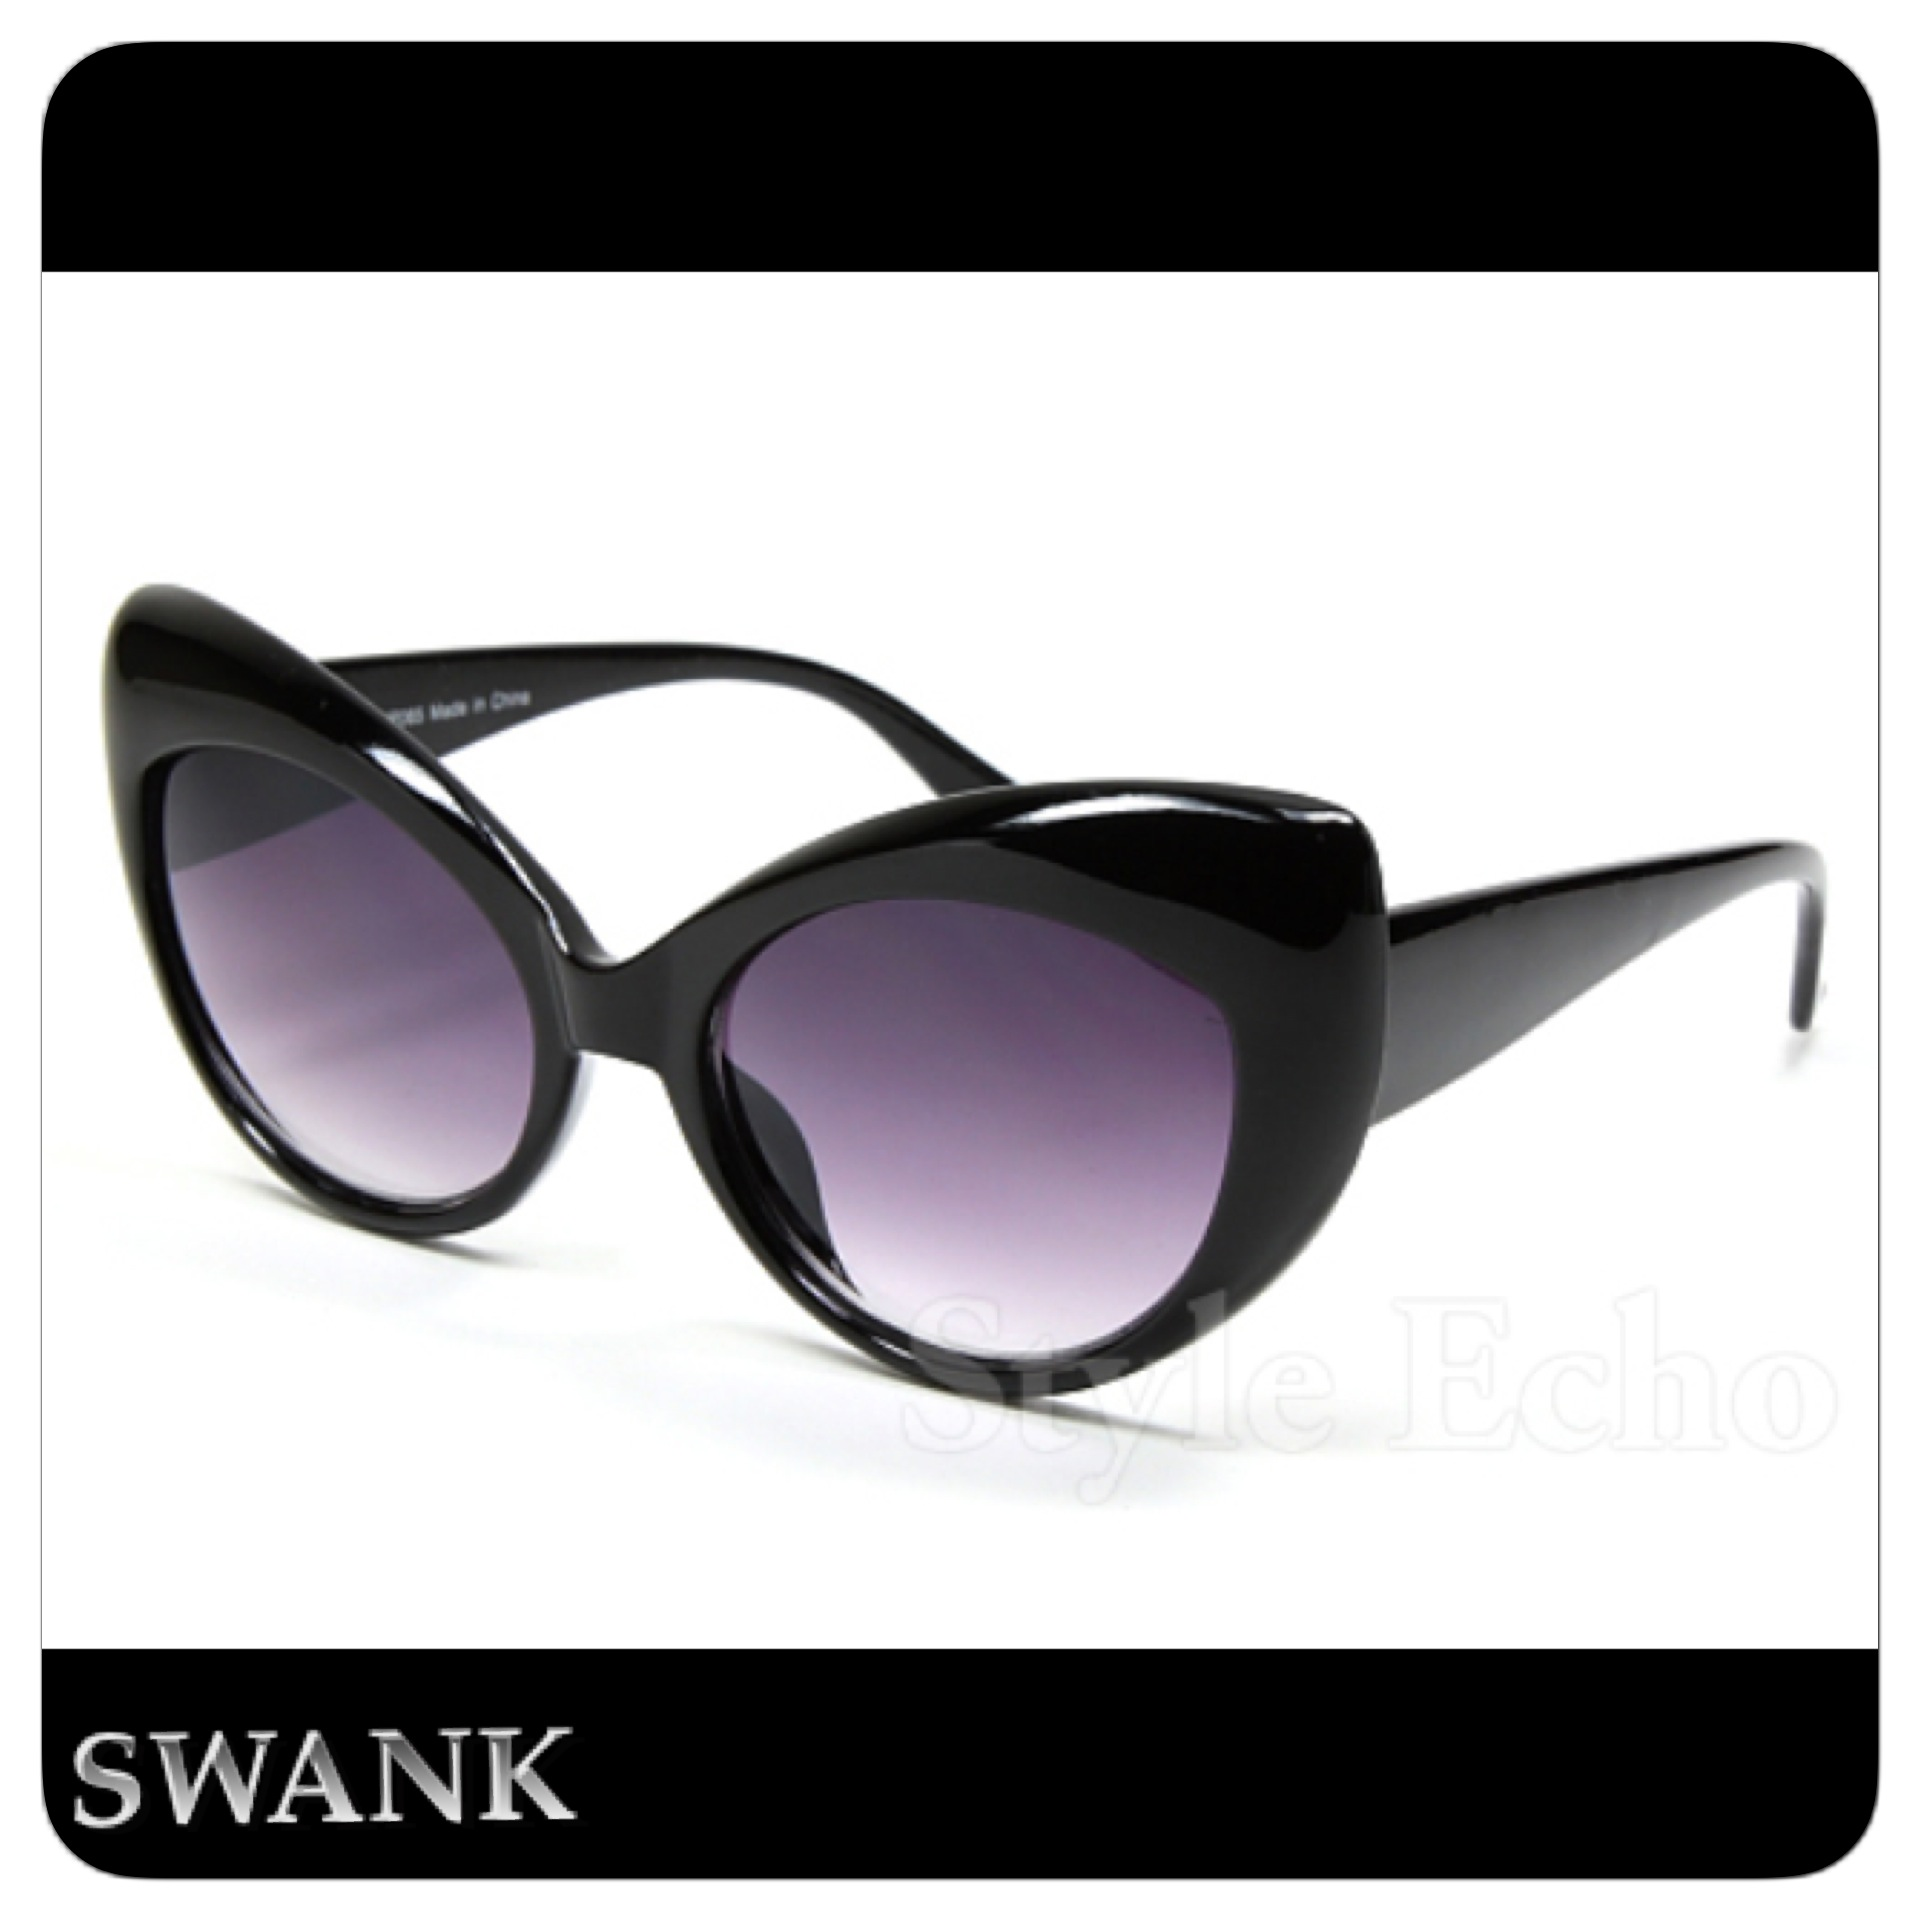 Swank On It Sunglasses Black